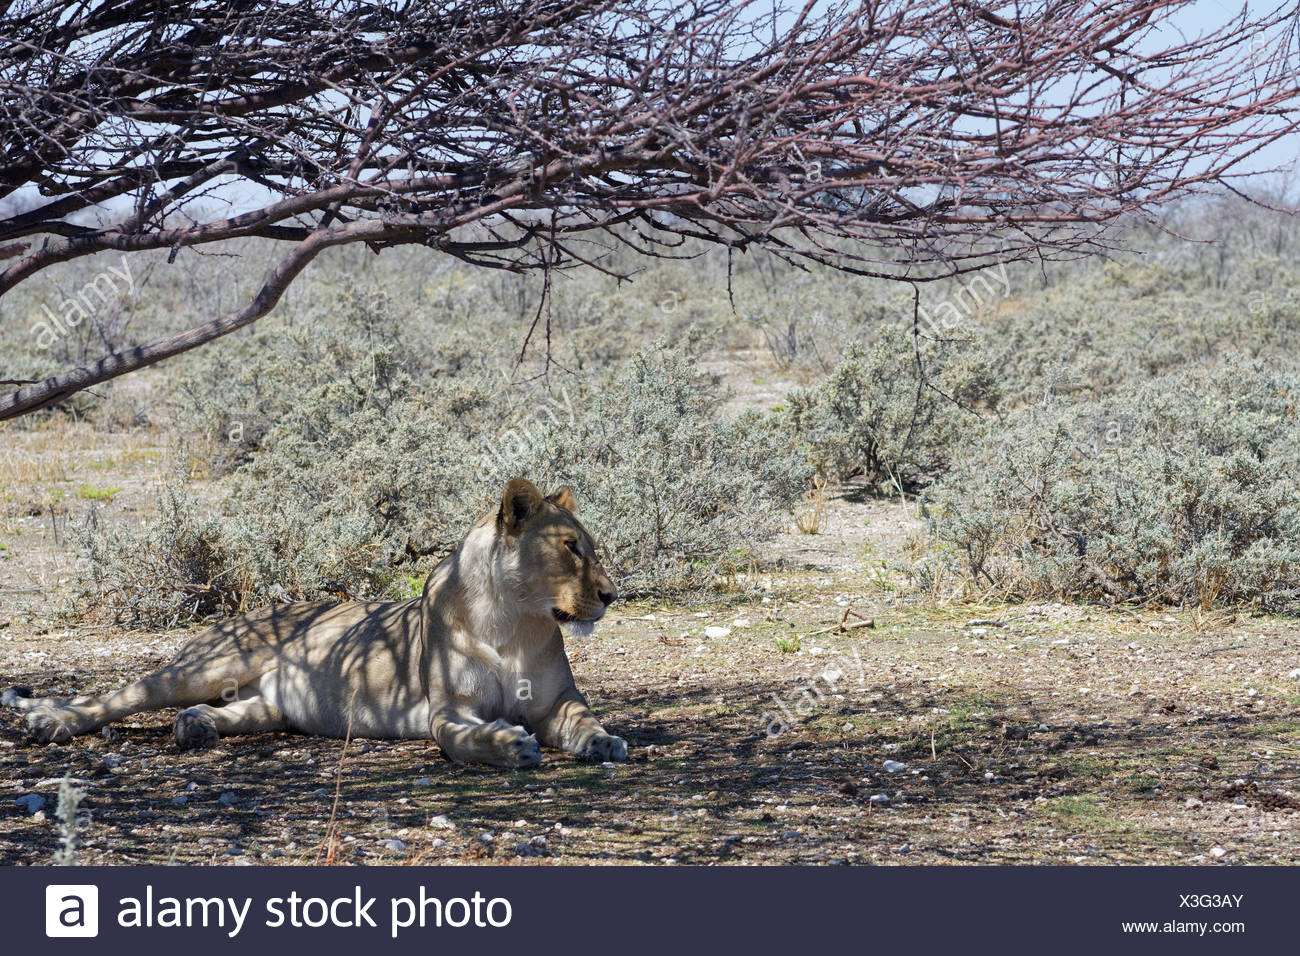 African lion (Panthera leo), lioness lying in the shade of a tree, alert, Etosha National Park, Namibia - Stock Image